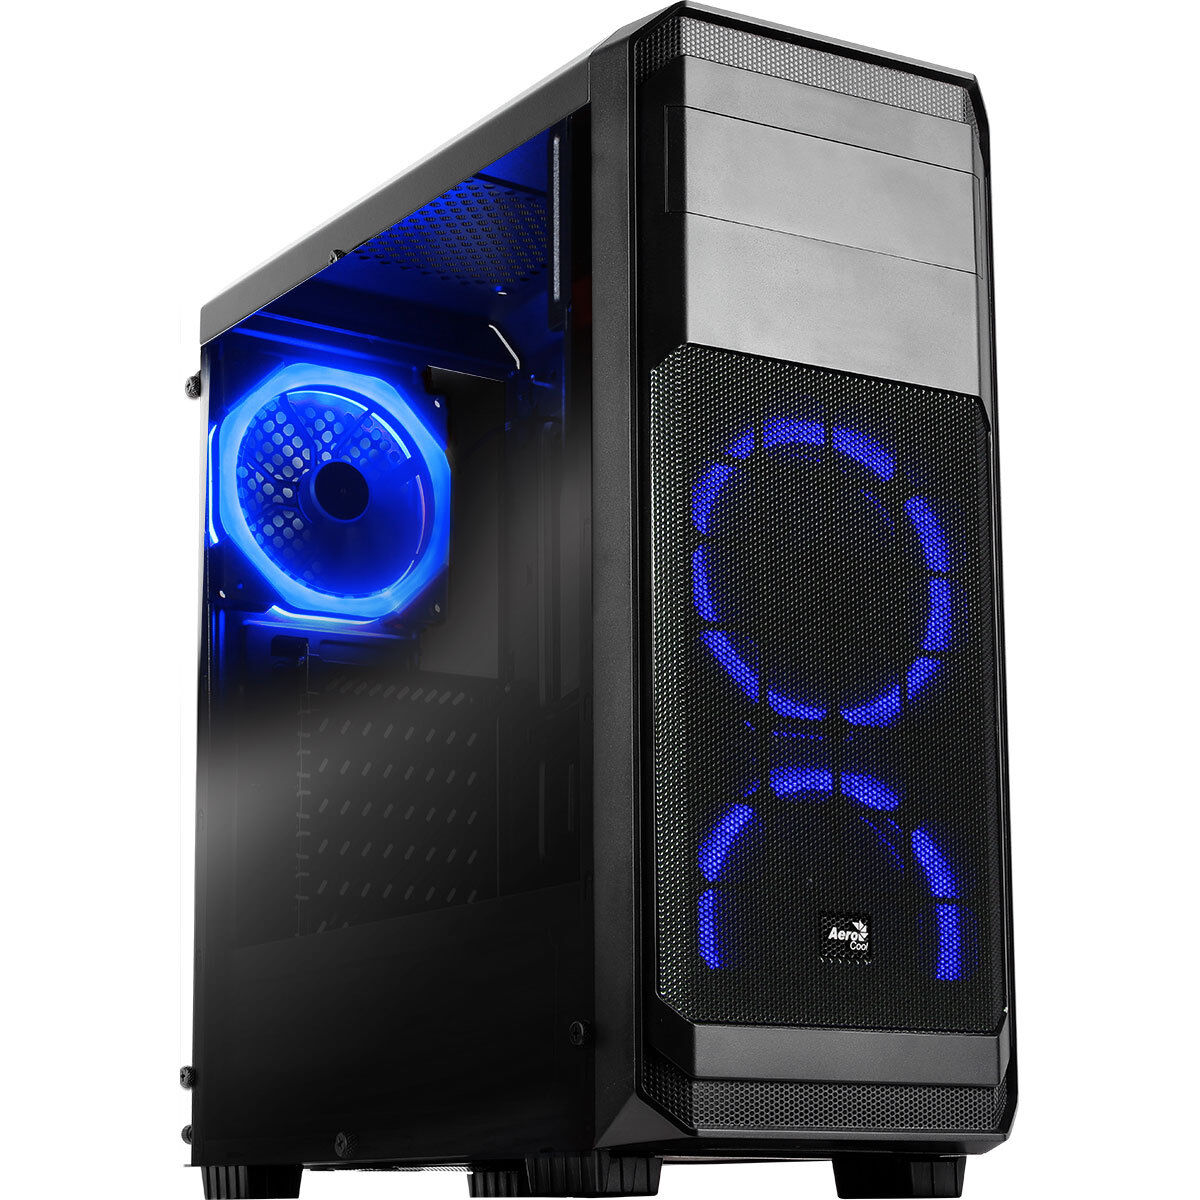 Computer Games - Gaming Computer Tower Desktop PC Intel Core i3 4GB RAM 500GB HDD 2GB GT710 Win10